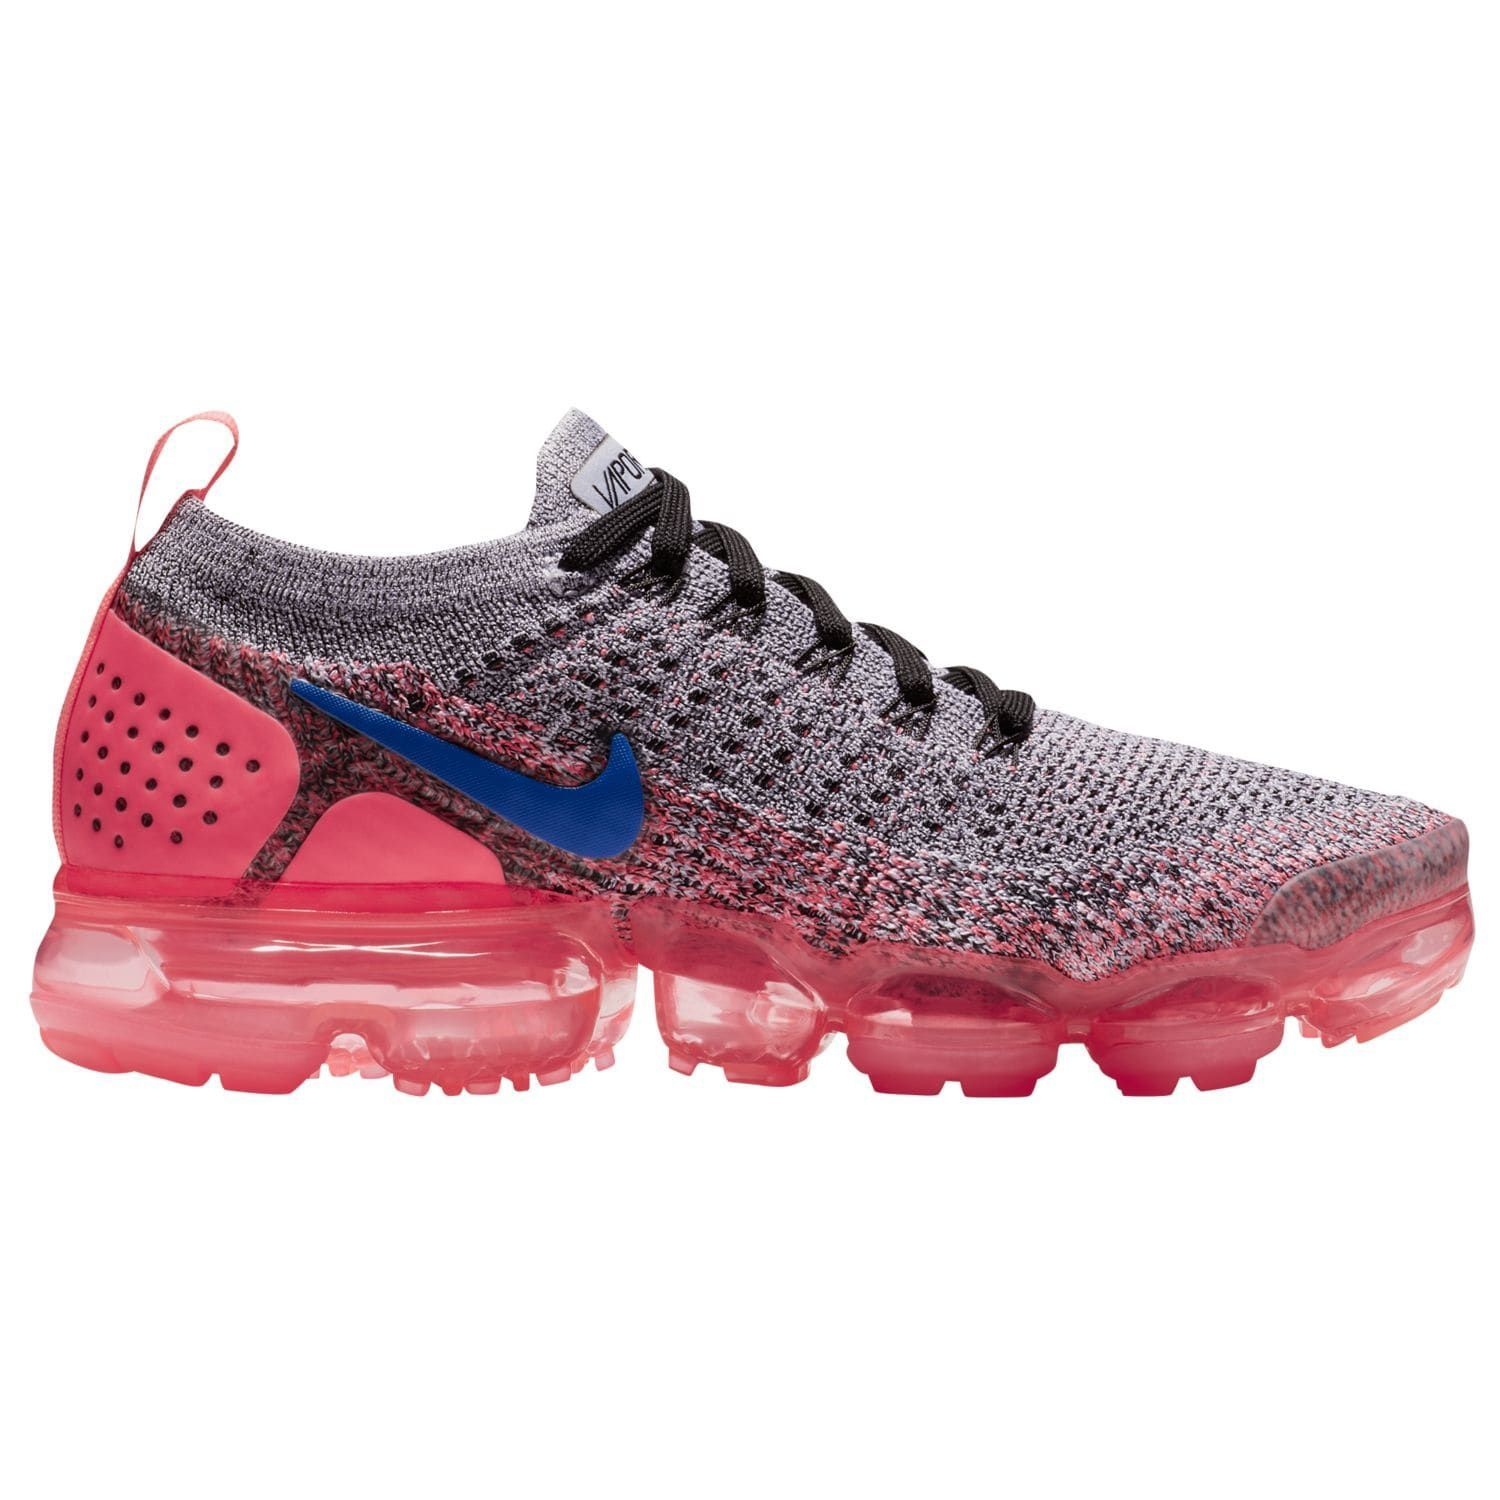 276e2b41b25b Nike Air VaporMax Flyknit 2 - Womens at Champs Sports Selected Style   White Ultramarine Hot